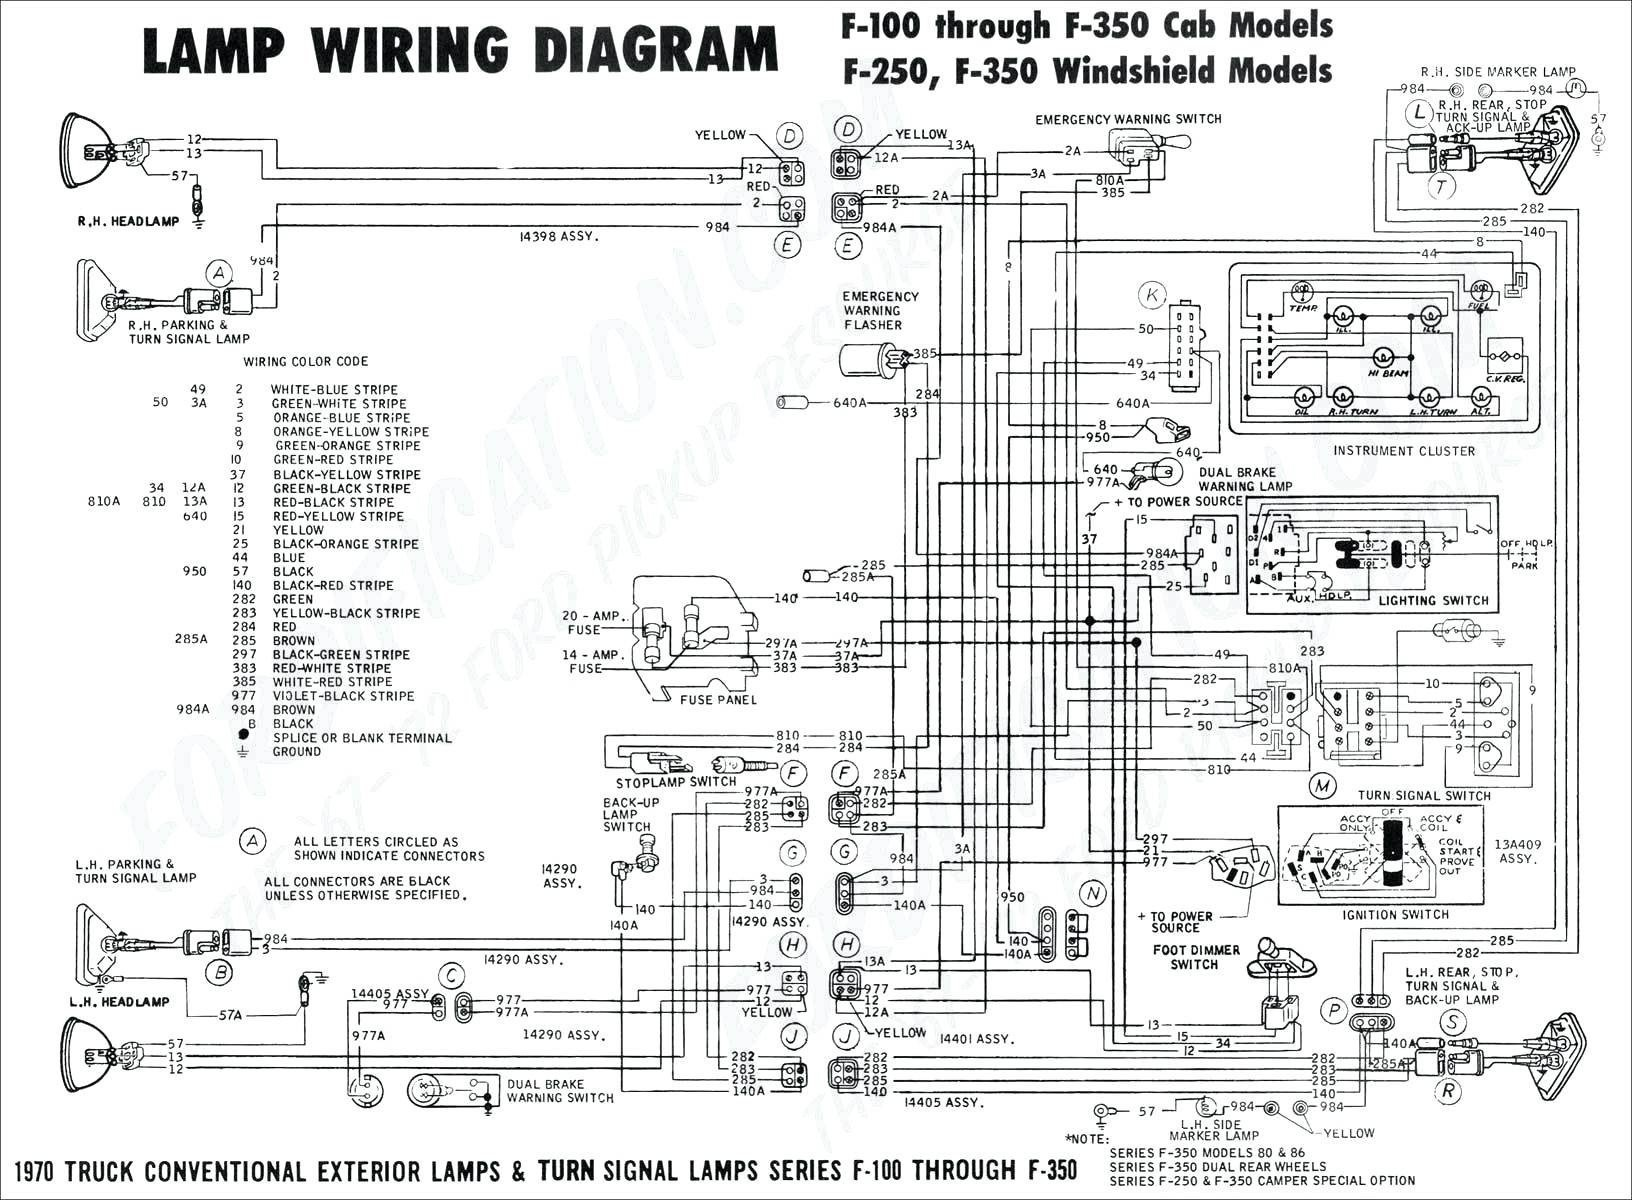 Basic Brake Light Wiring Diagram - Auto Electrical Wiring DiagramWiring Diagram